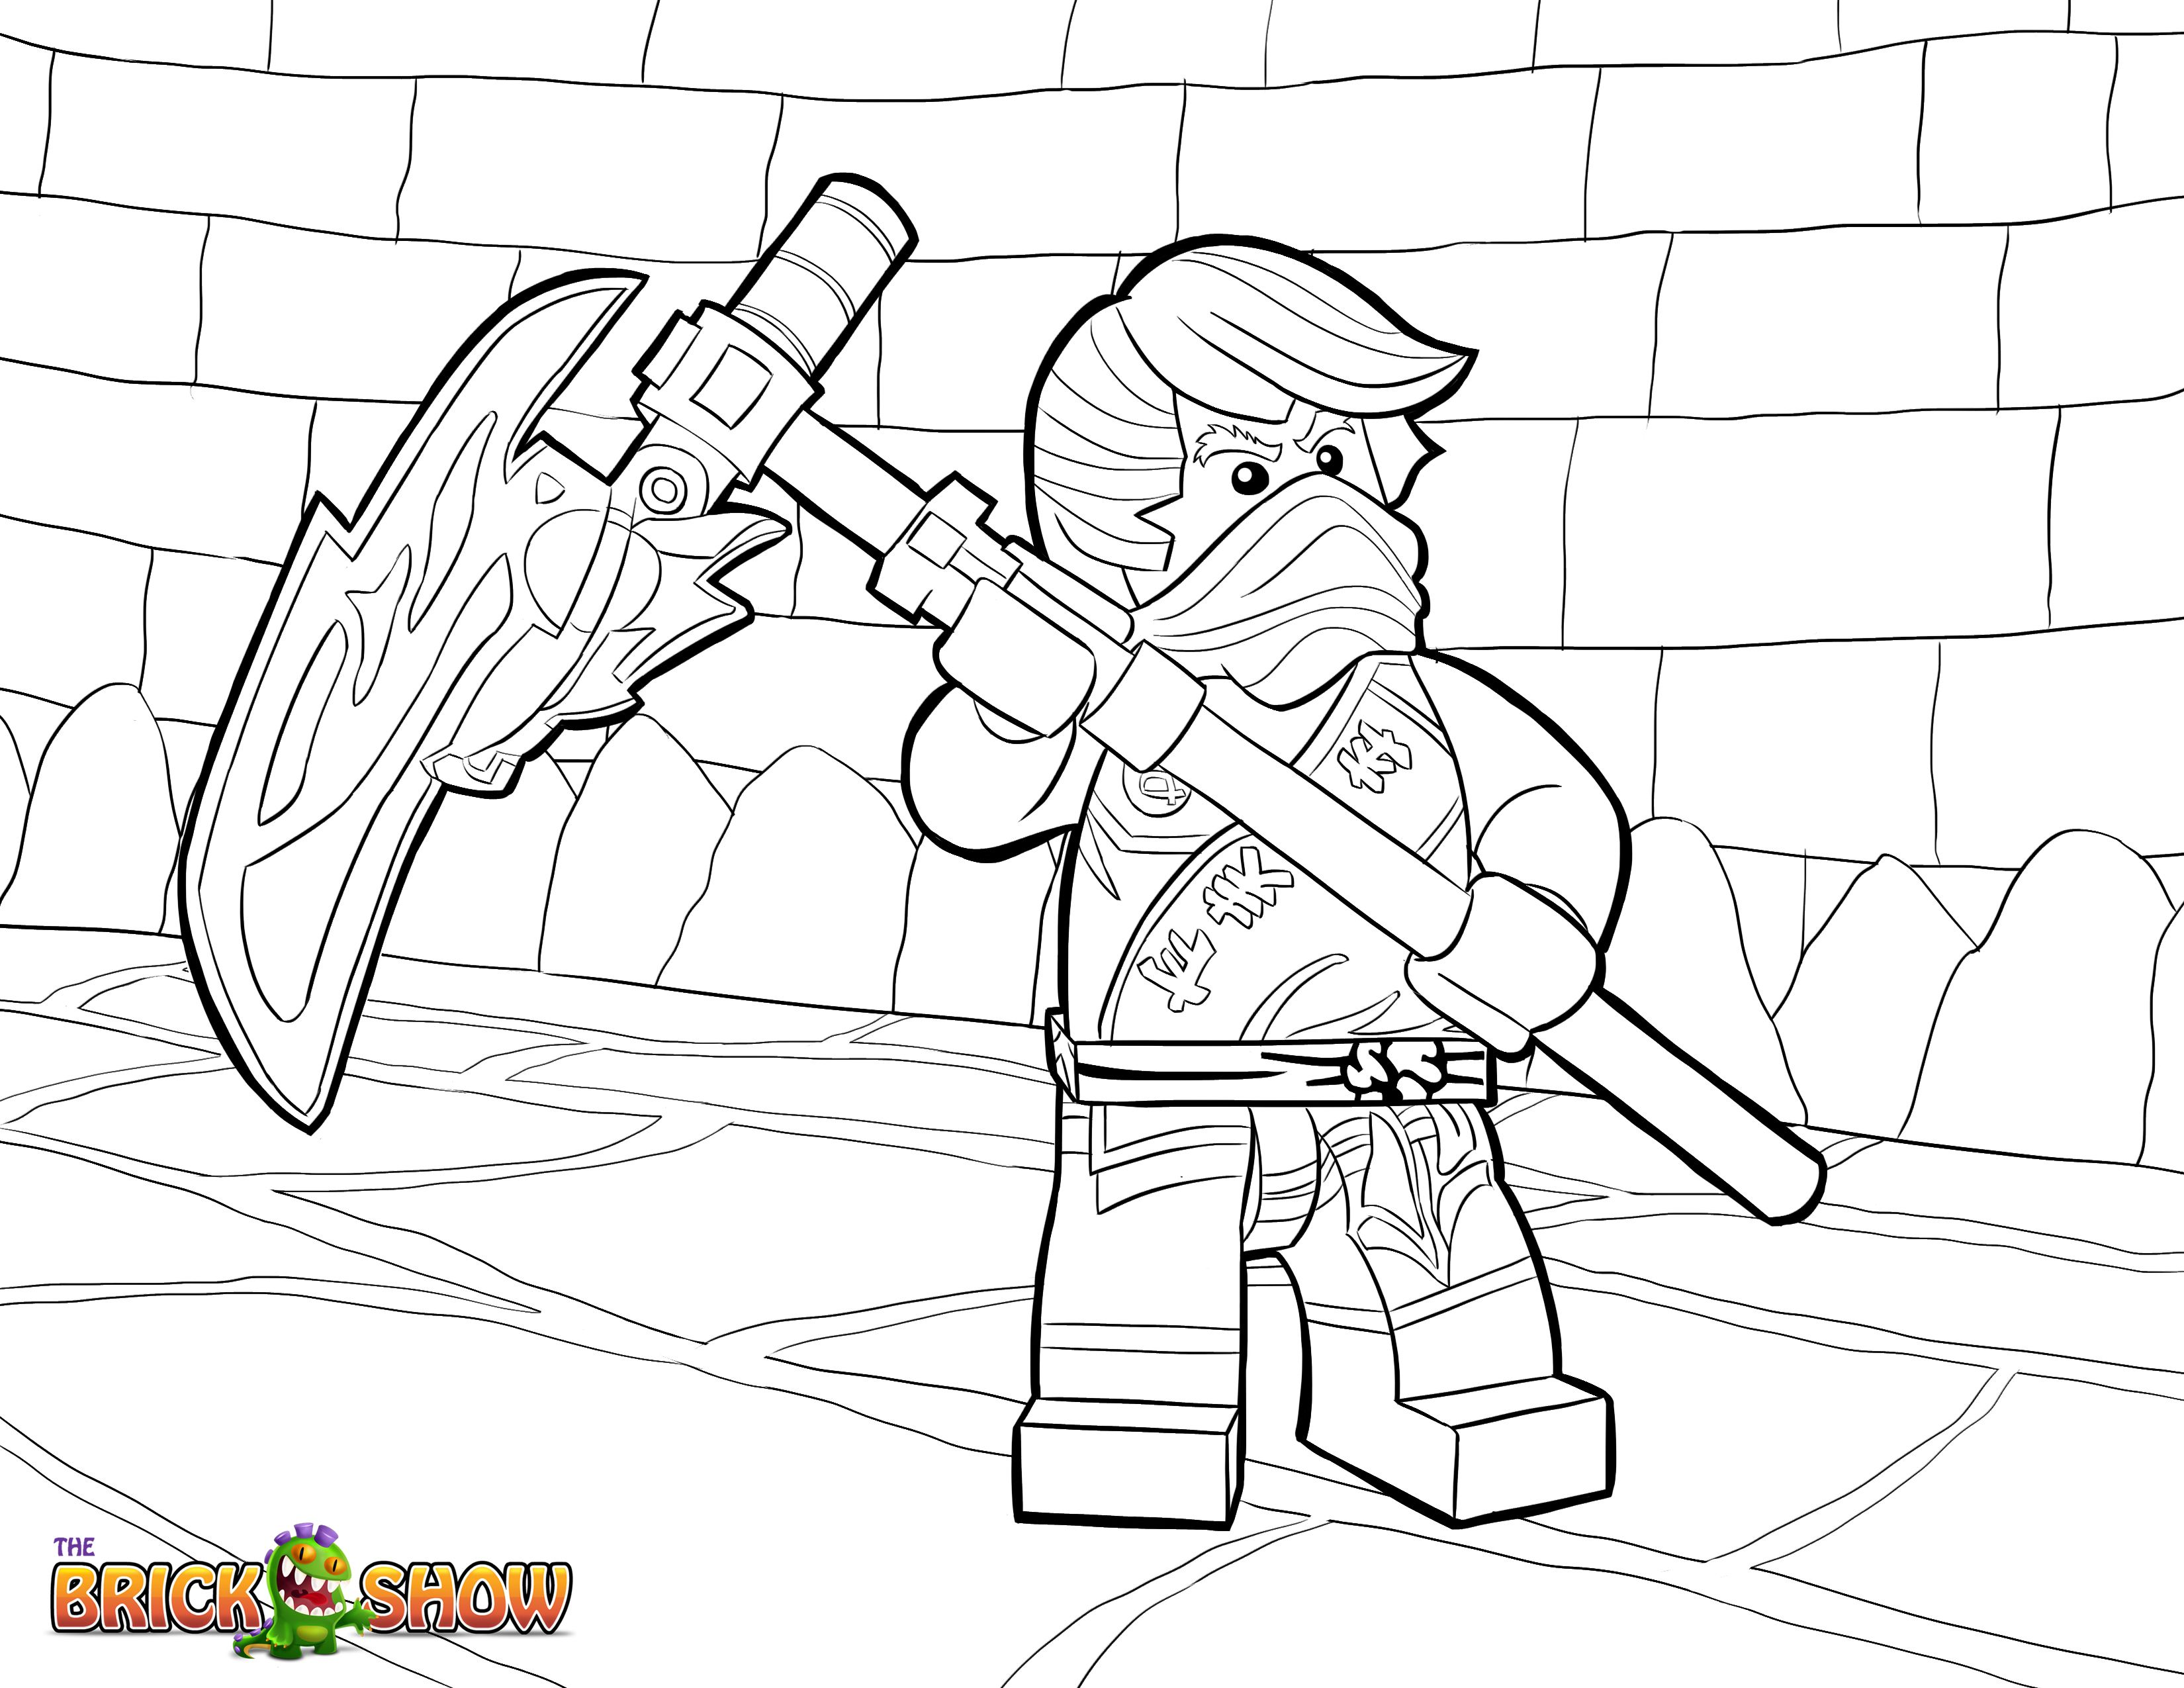 Coloring pages ninjago - Lego Ninjago Coloring Page Lego Lego Ninjago Cole Tournament Of Elements Printable Color Sheet